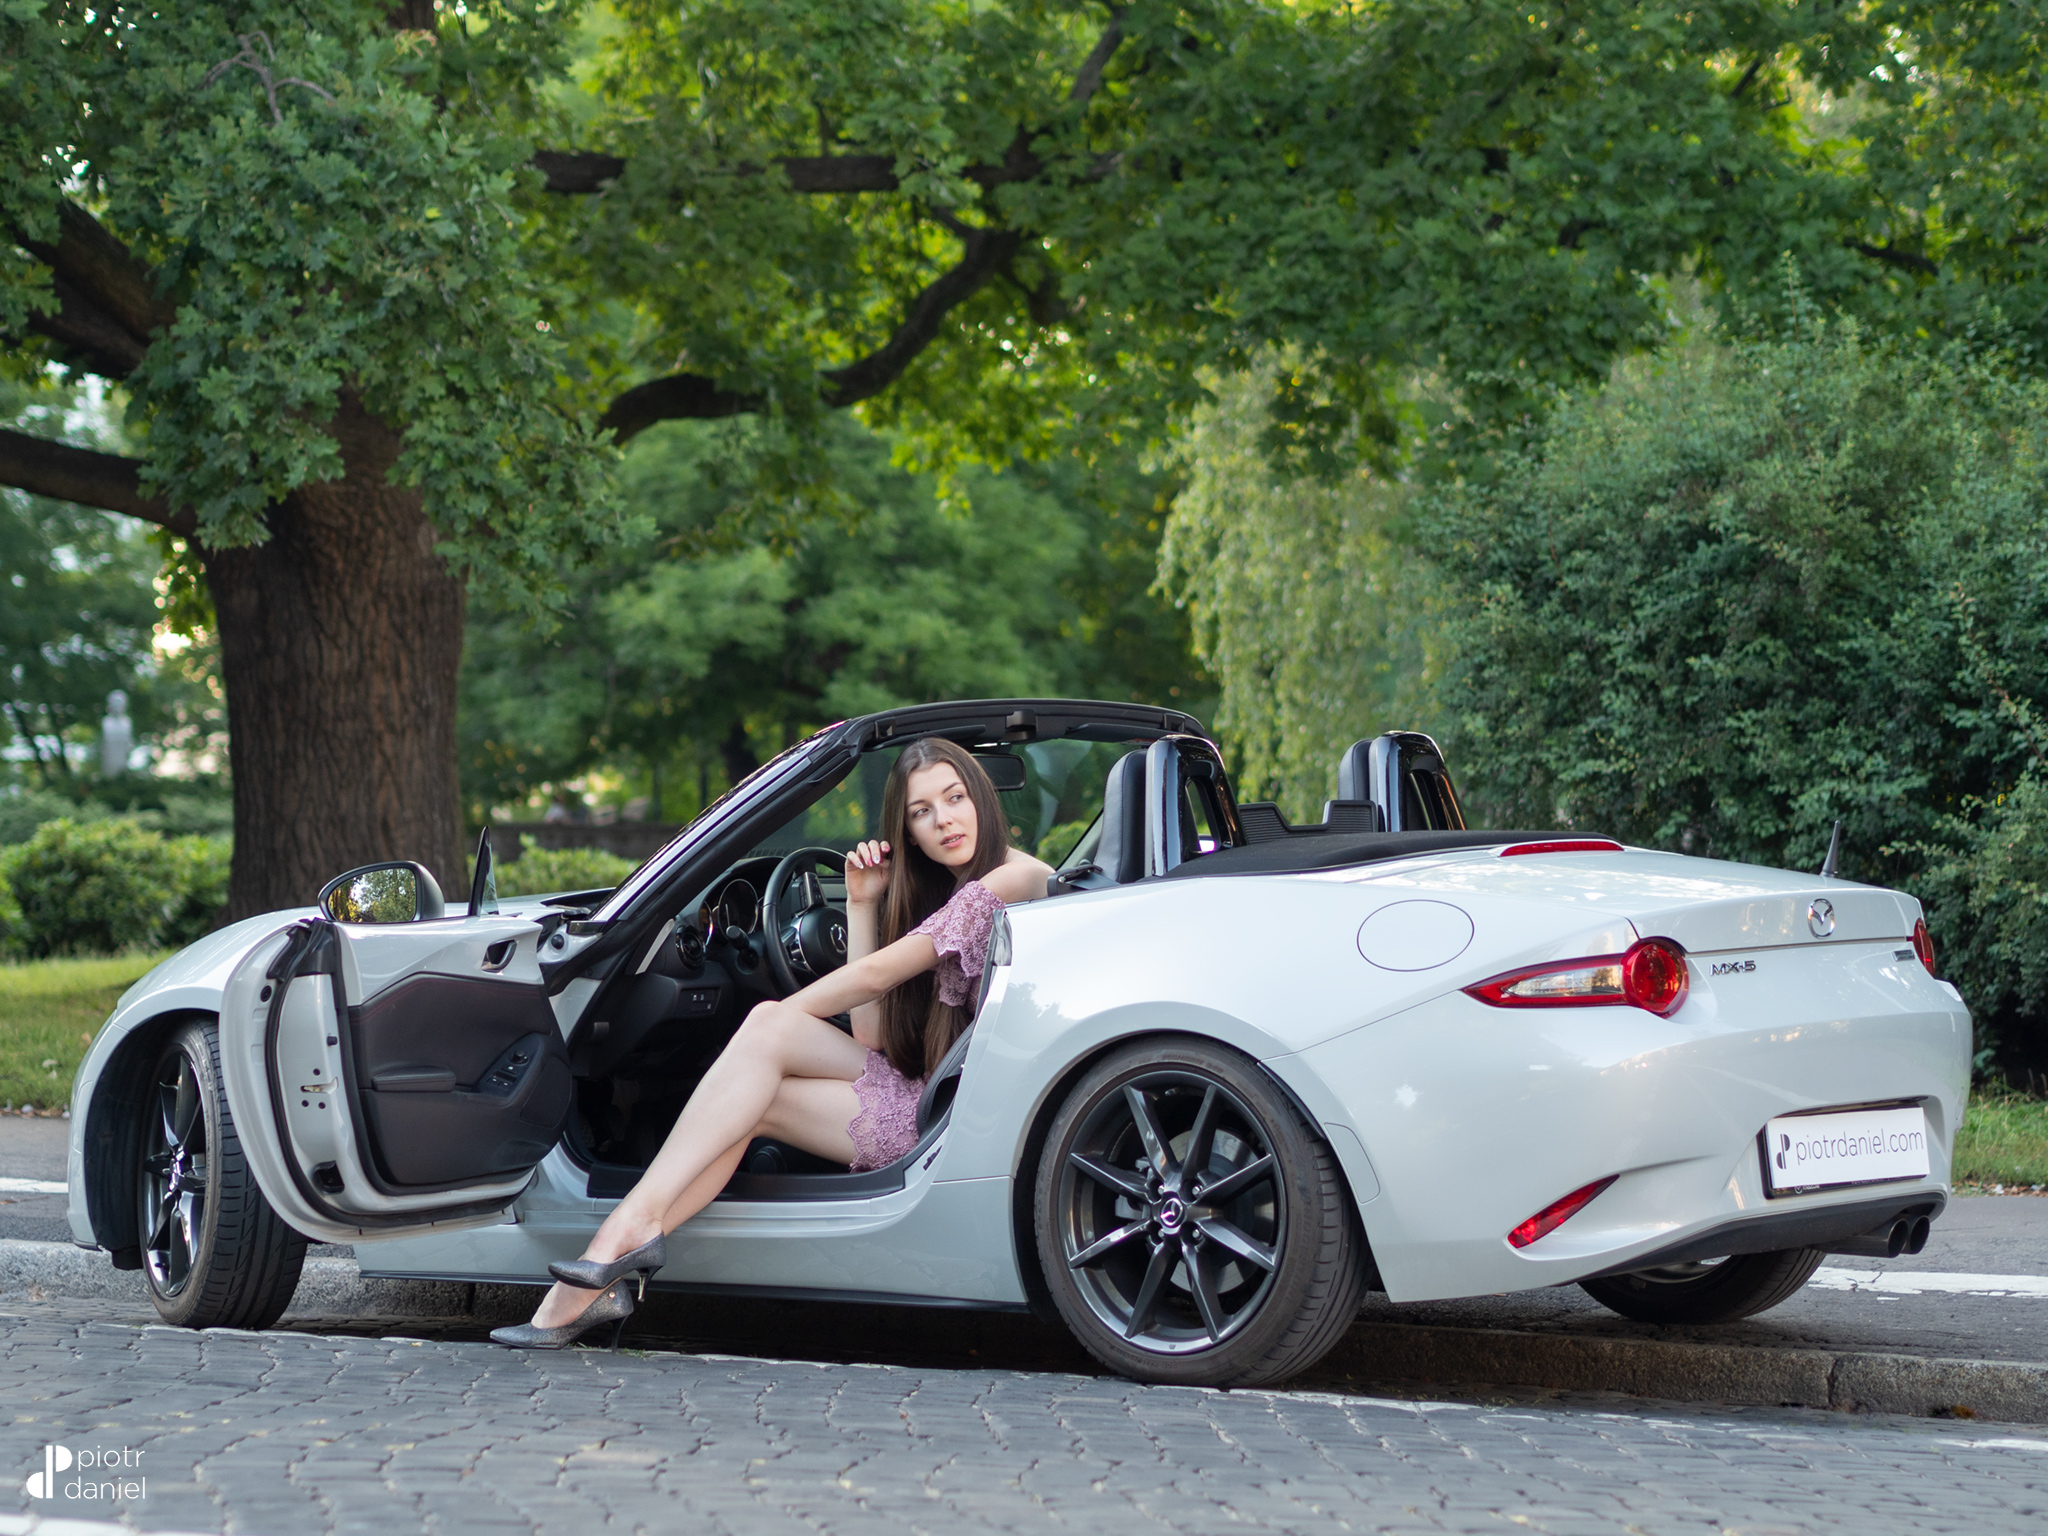 The Miata And The Girl